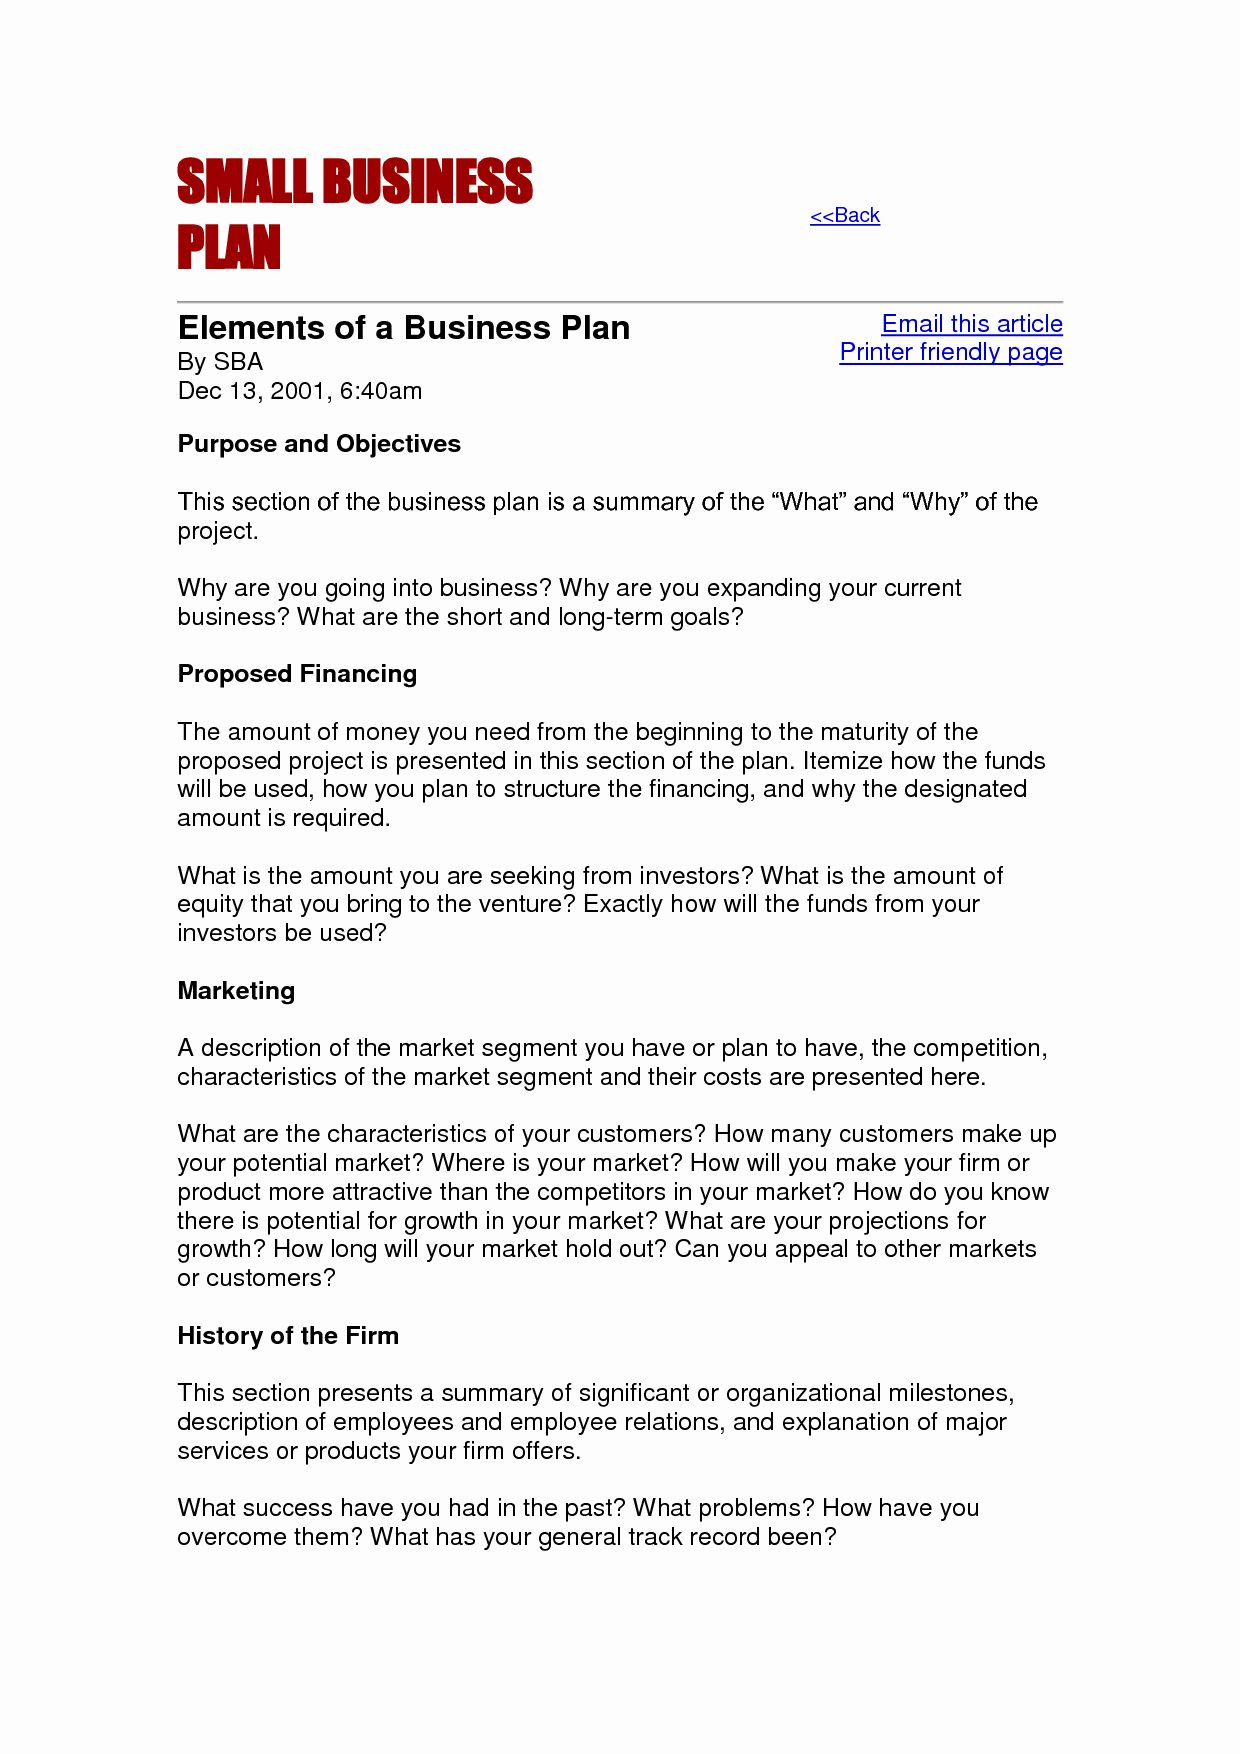 Small Business Web Site Template New Web Design Proposal Template